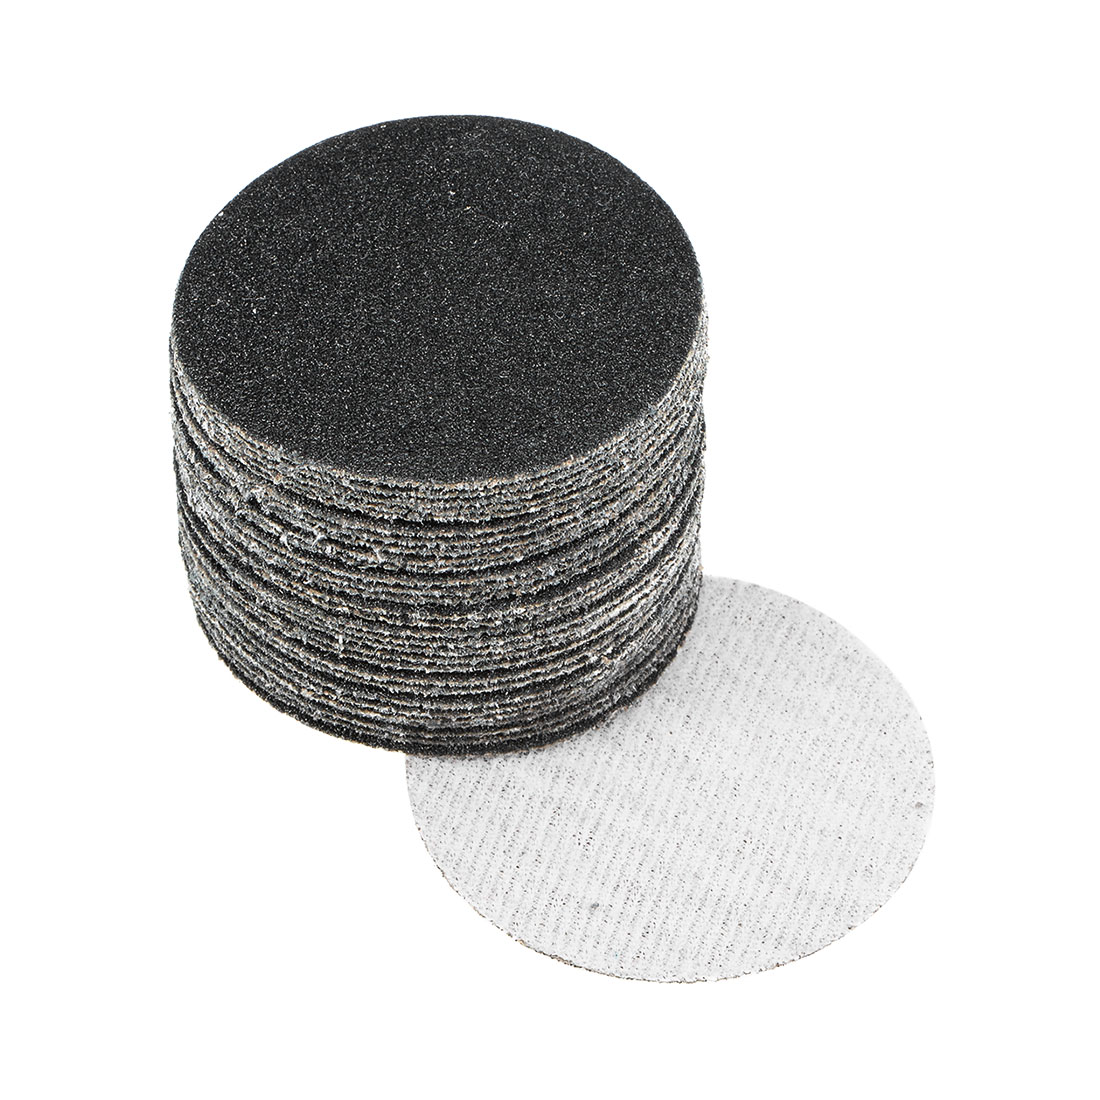 2 inch Wet Dry Discs 100 Grit Hook and Loop Sanding Disc Silicon Carbide 30pcs